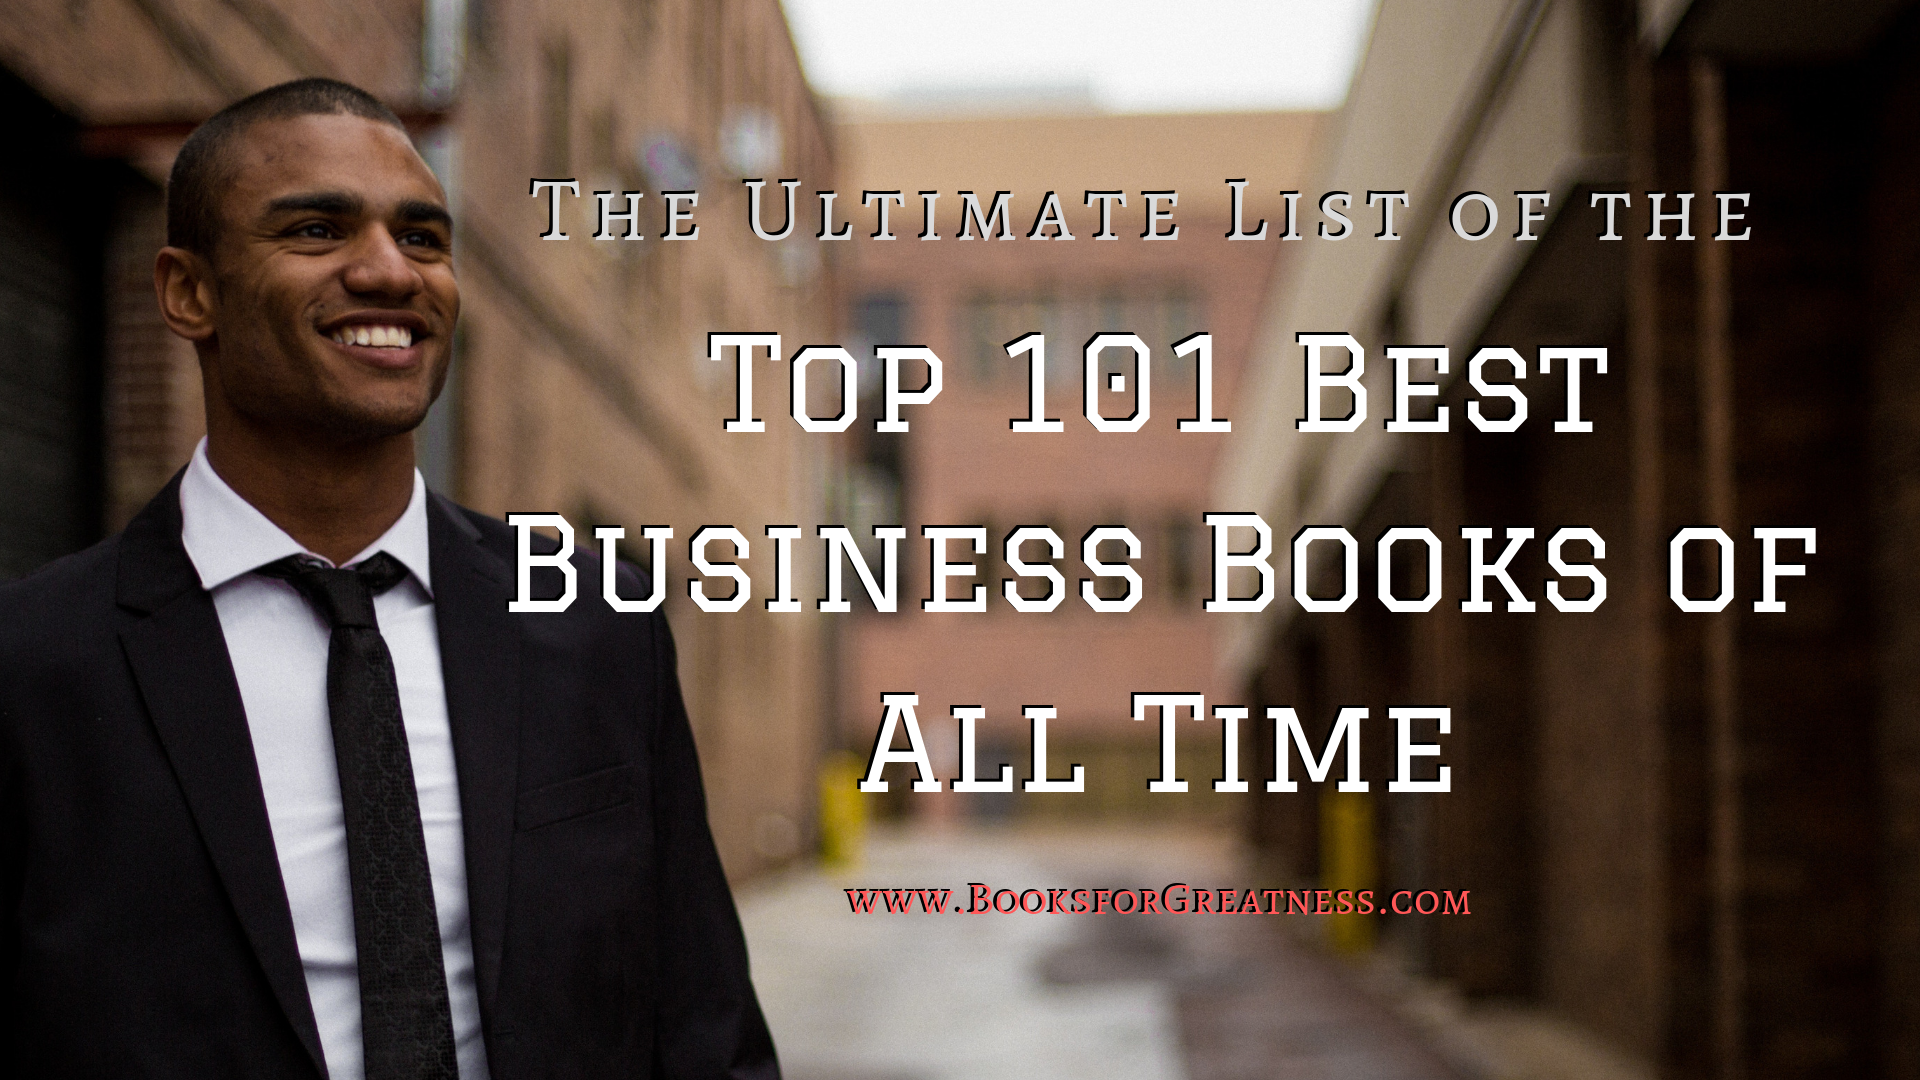 The Ultimate List of the Top 101 Best Business Books of All Time